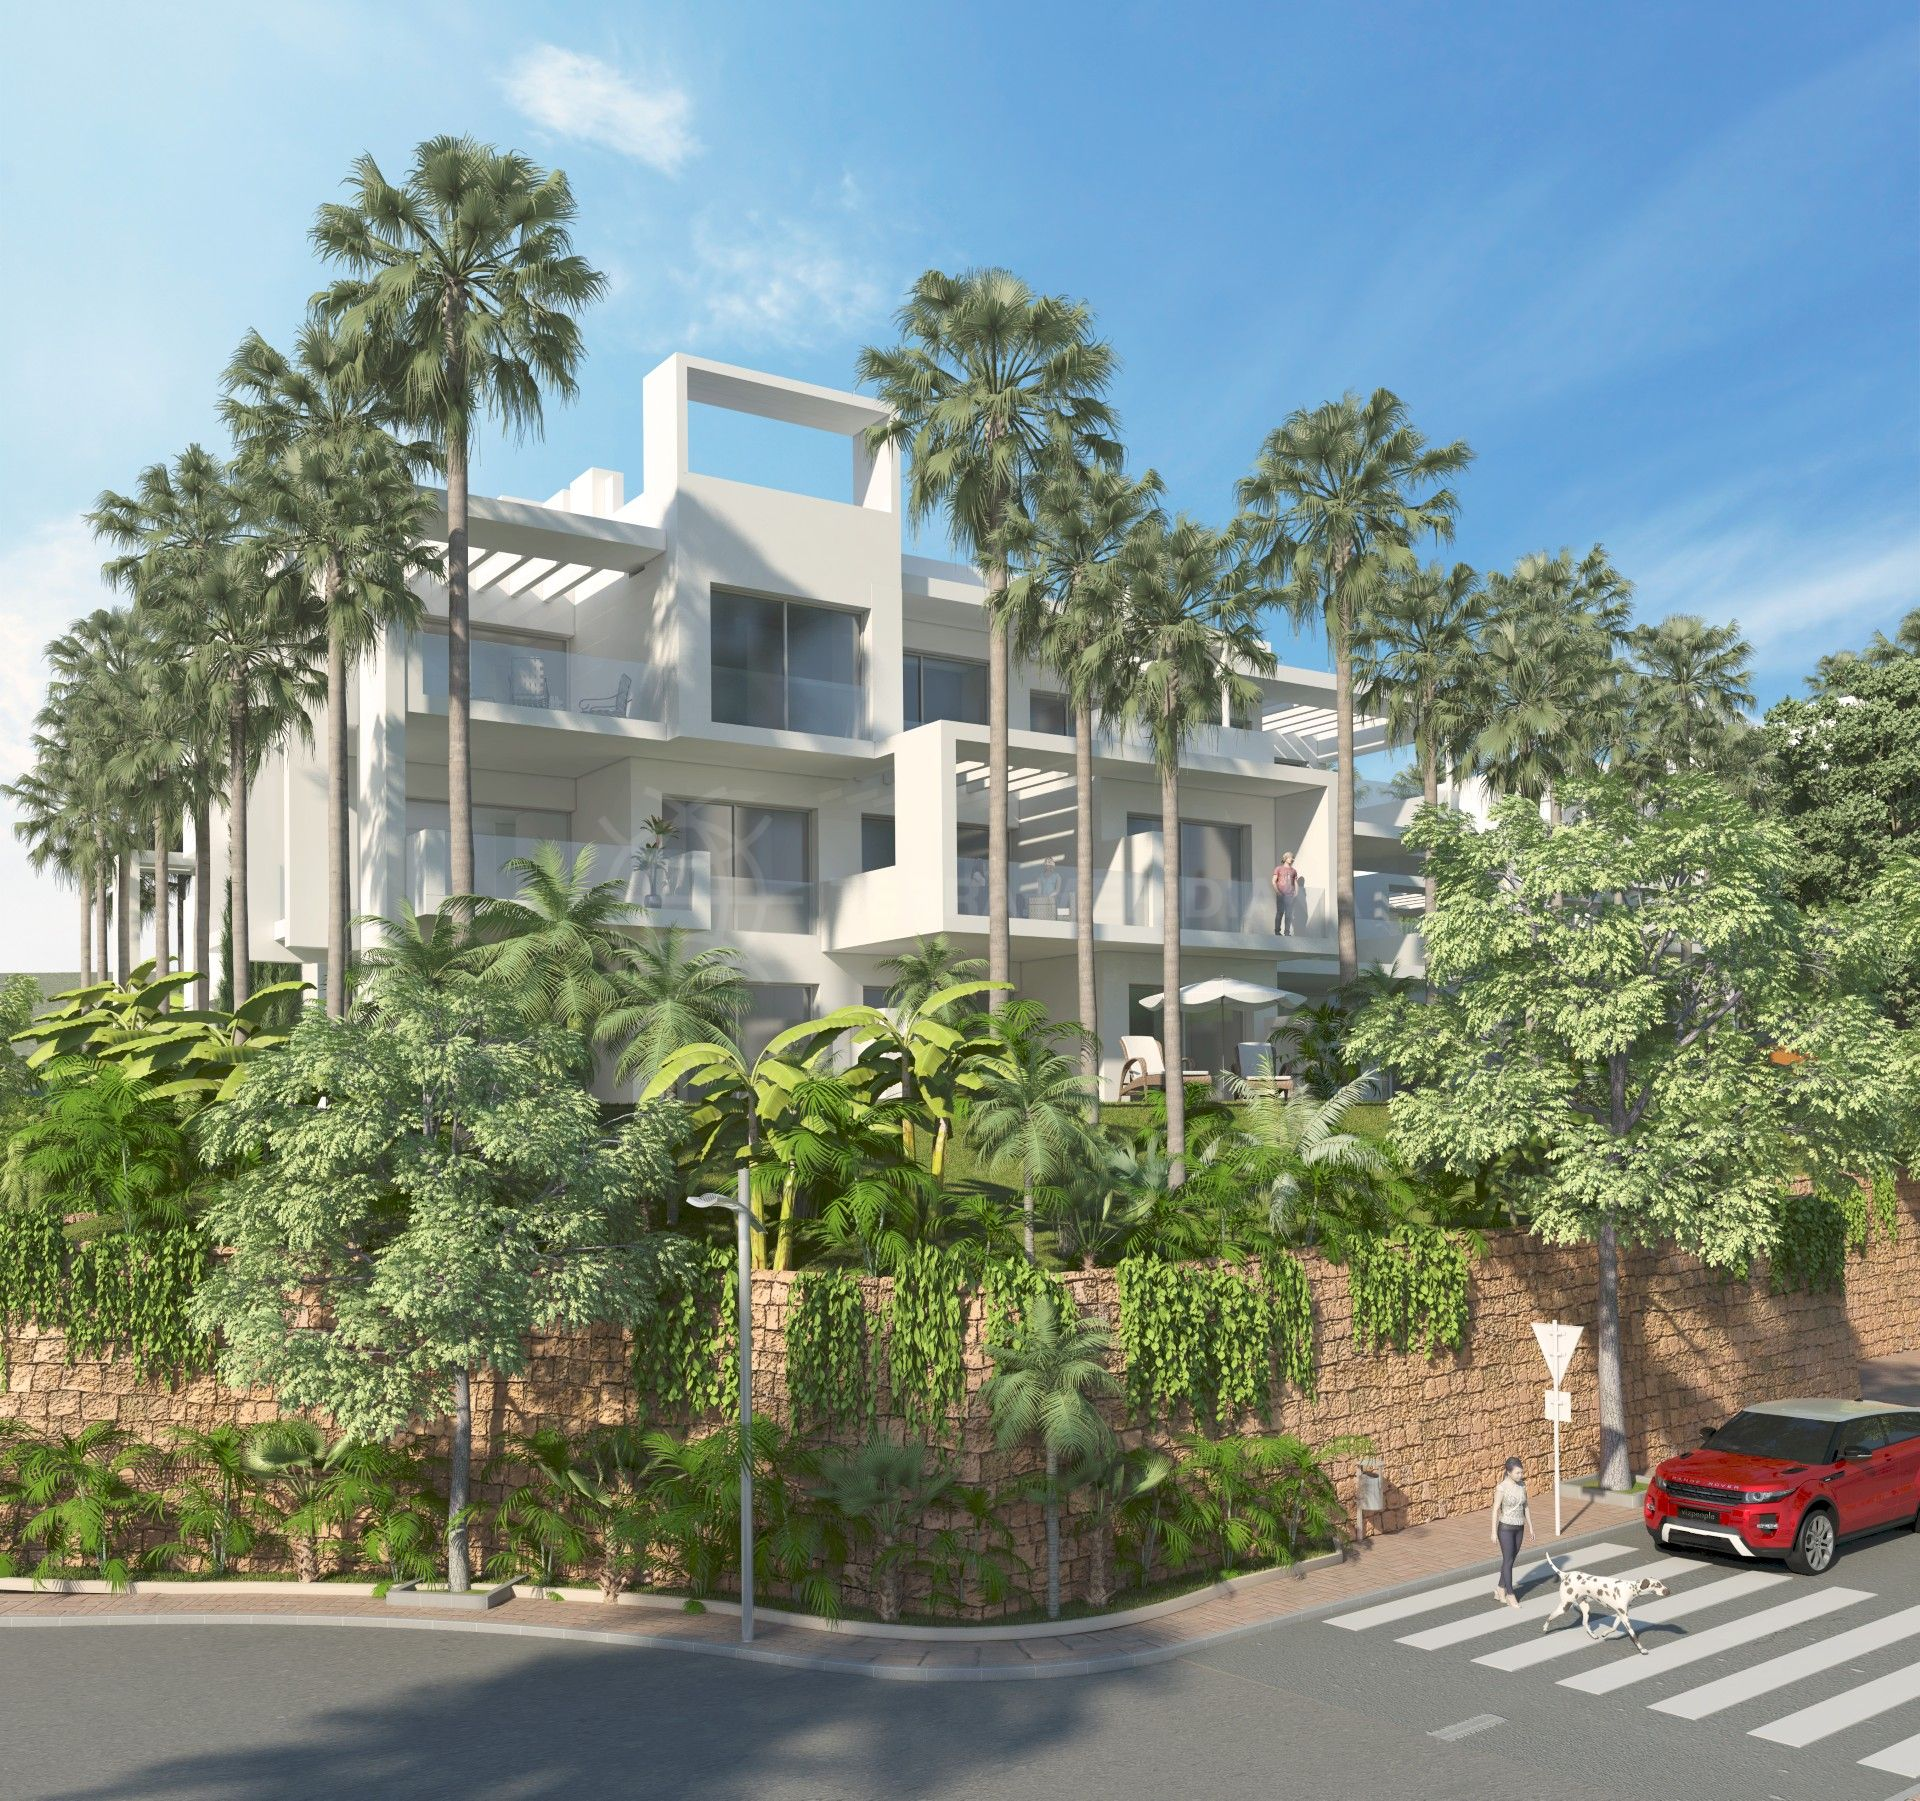 off-plan 2 bedroom ground floor apartment for sale in estepona with